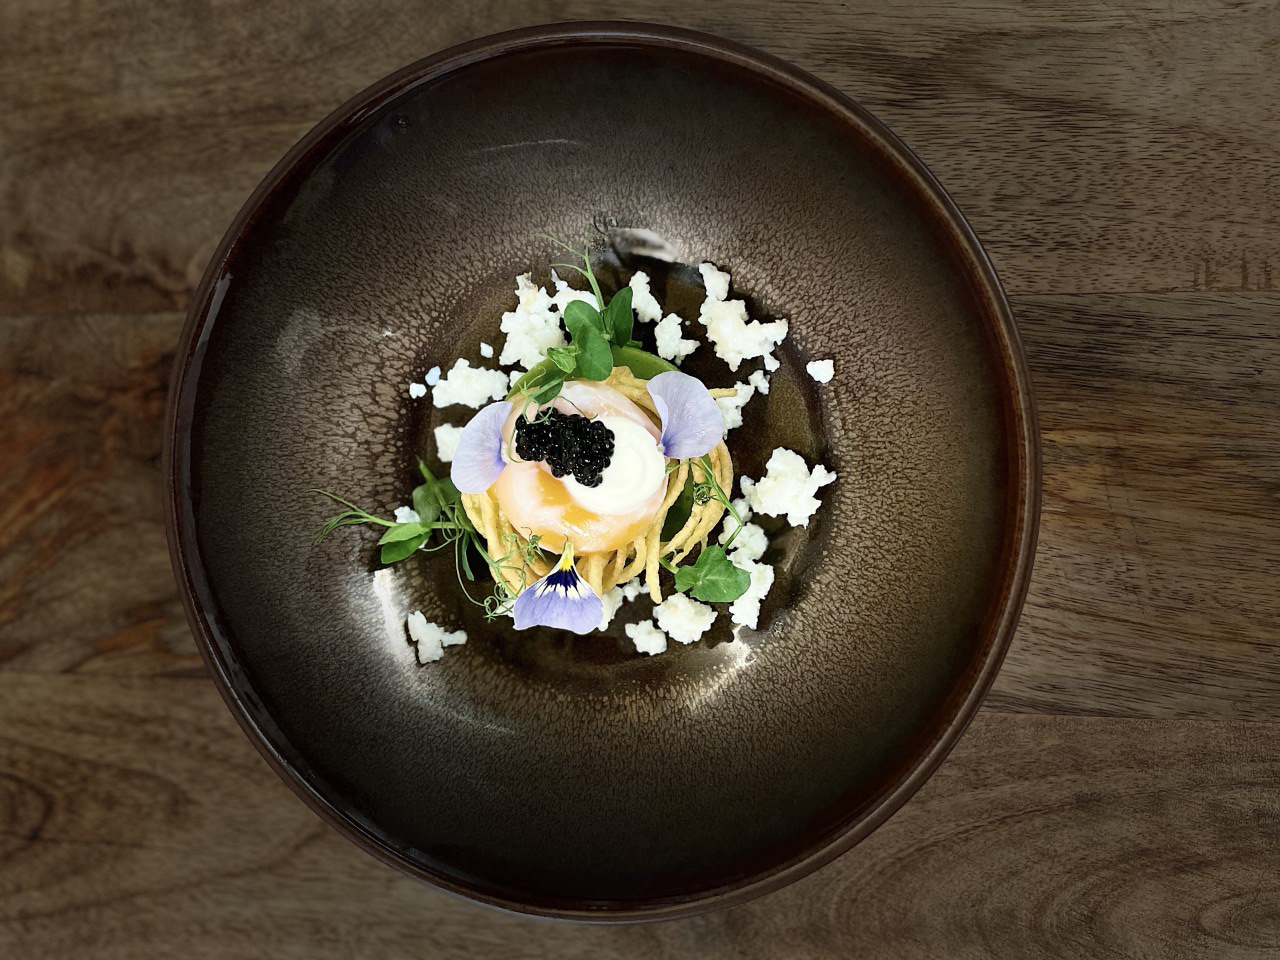 Wood colored plate with food on it